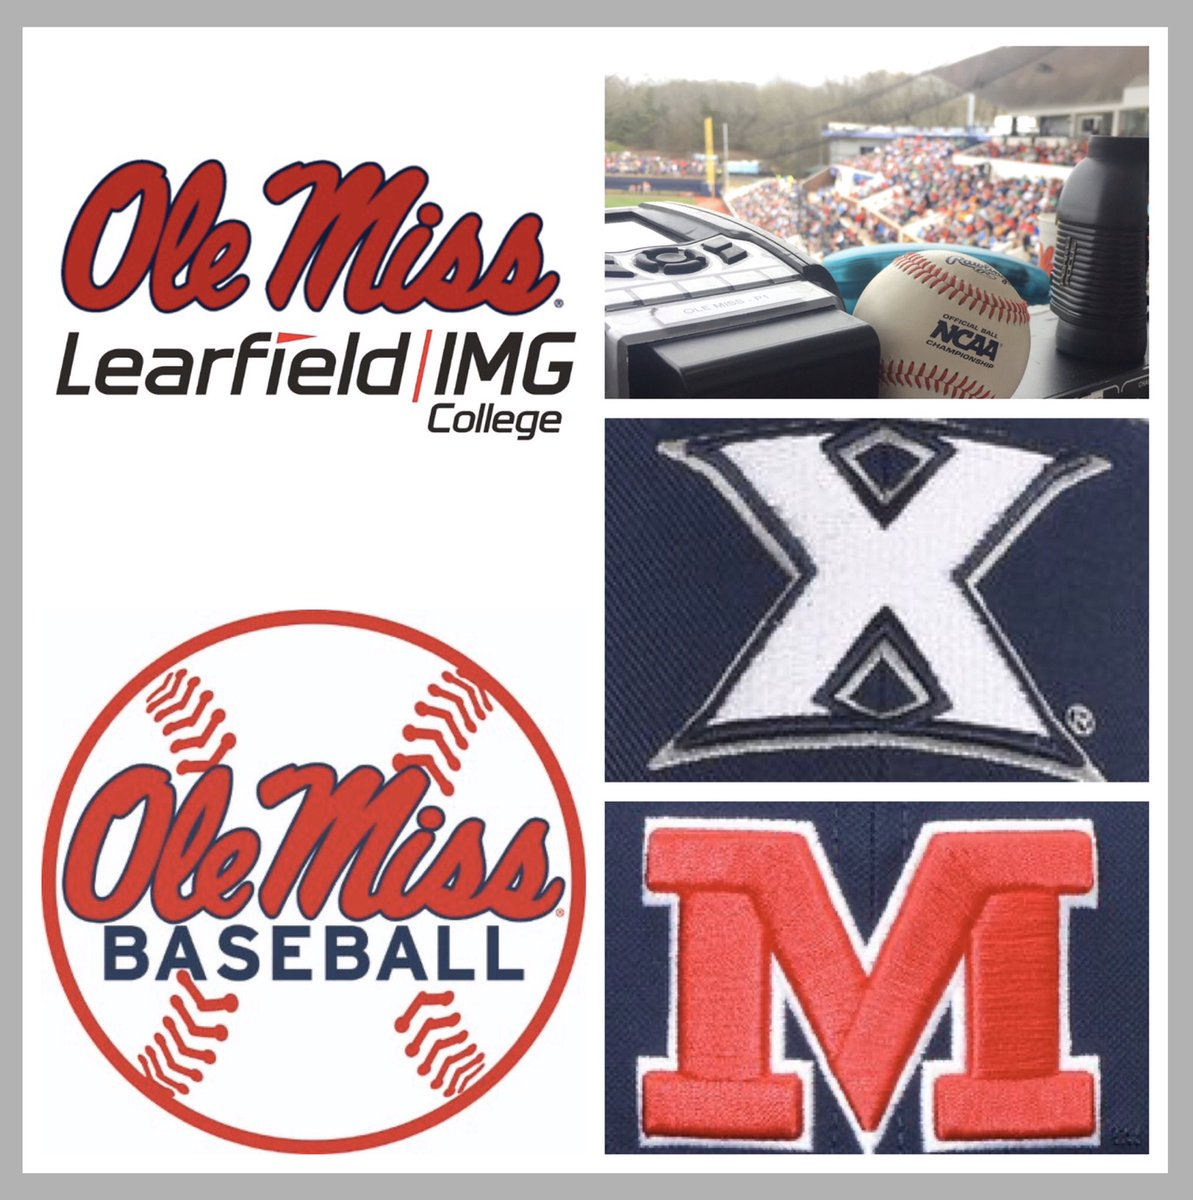 A 13-0 No No last night for @OleMissBSB!  We've got game two today vs Xavier at 1:30pm.  Airtime 1pm on the @OleMissNetwork with @RebVoice and Brad Henderson.pic.twitter.com/9kkiWe8iH2